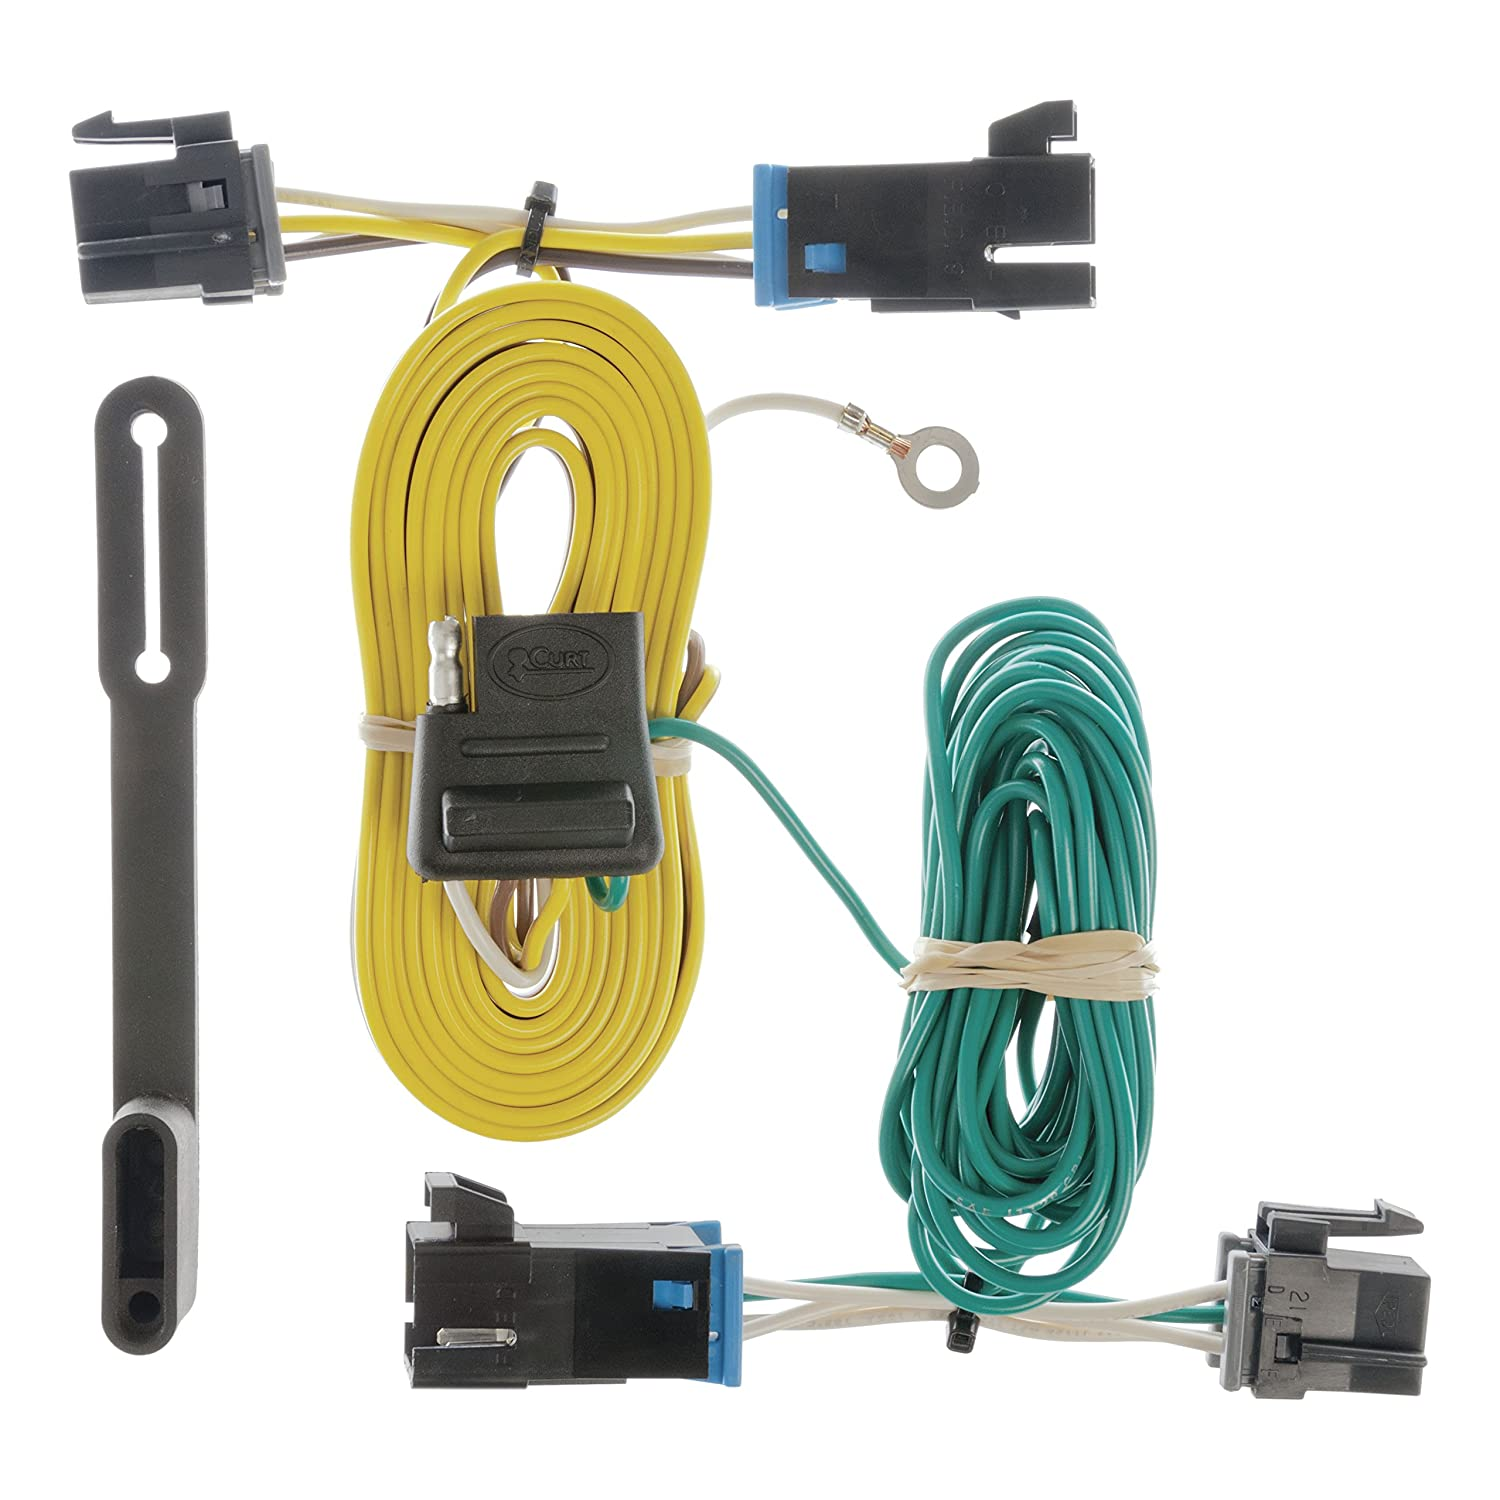 81EBNbZDfPL._SL1500_ amazon com curt 55540 custom wiring harness automotive curt trailer wiring harness kit at mifinder.co